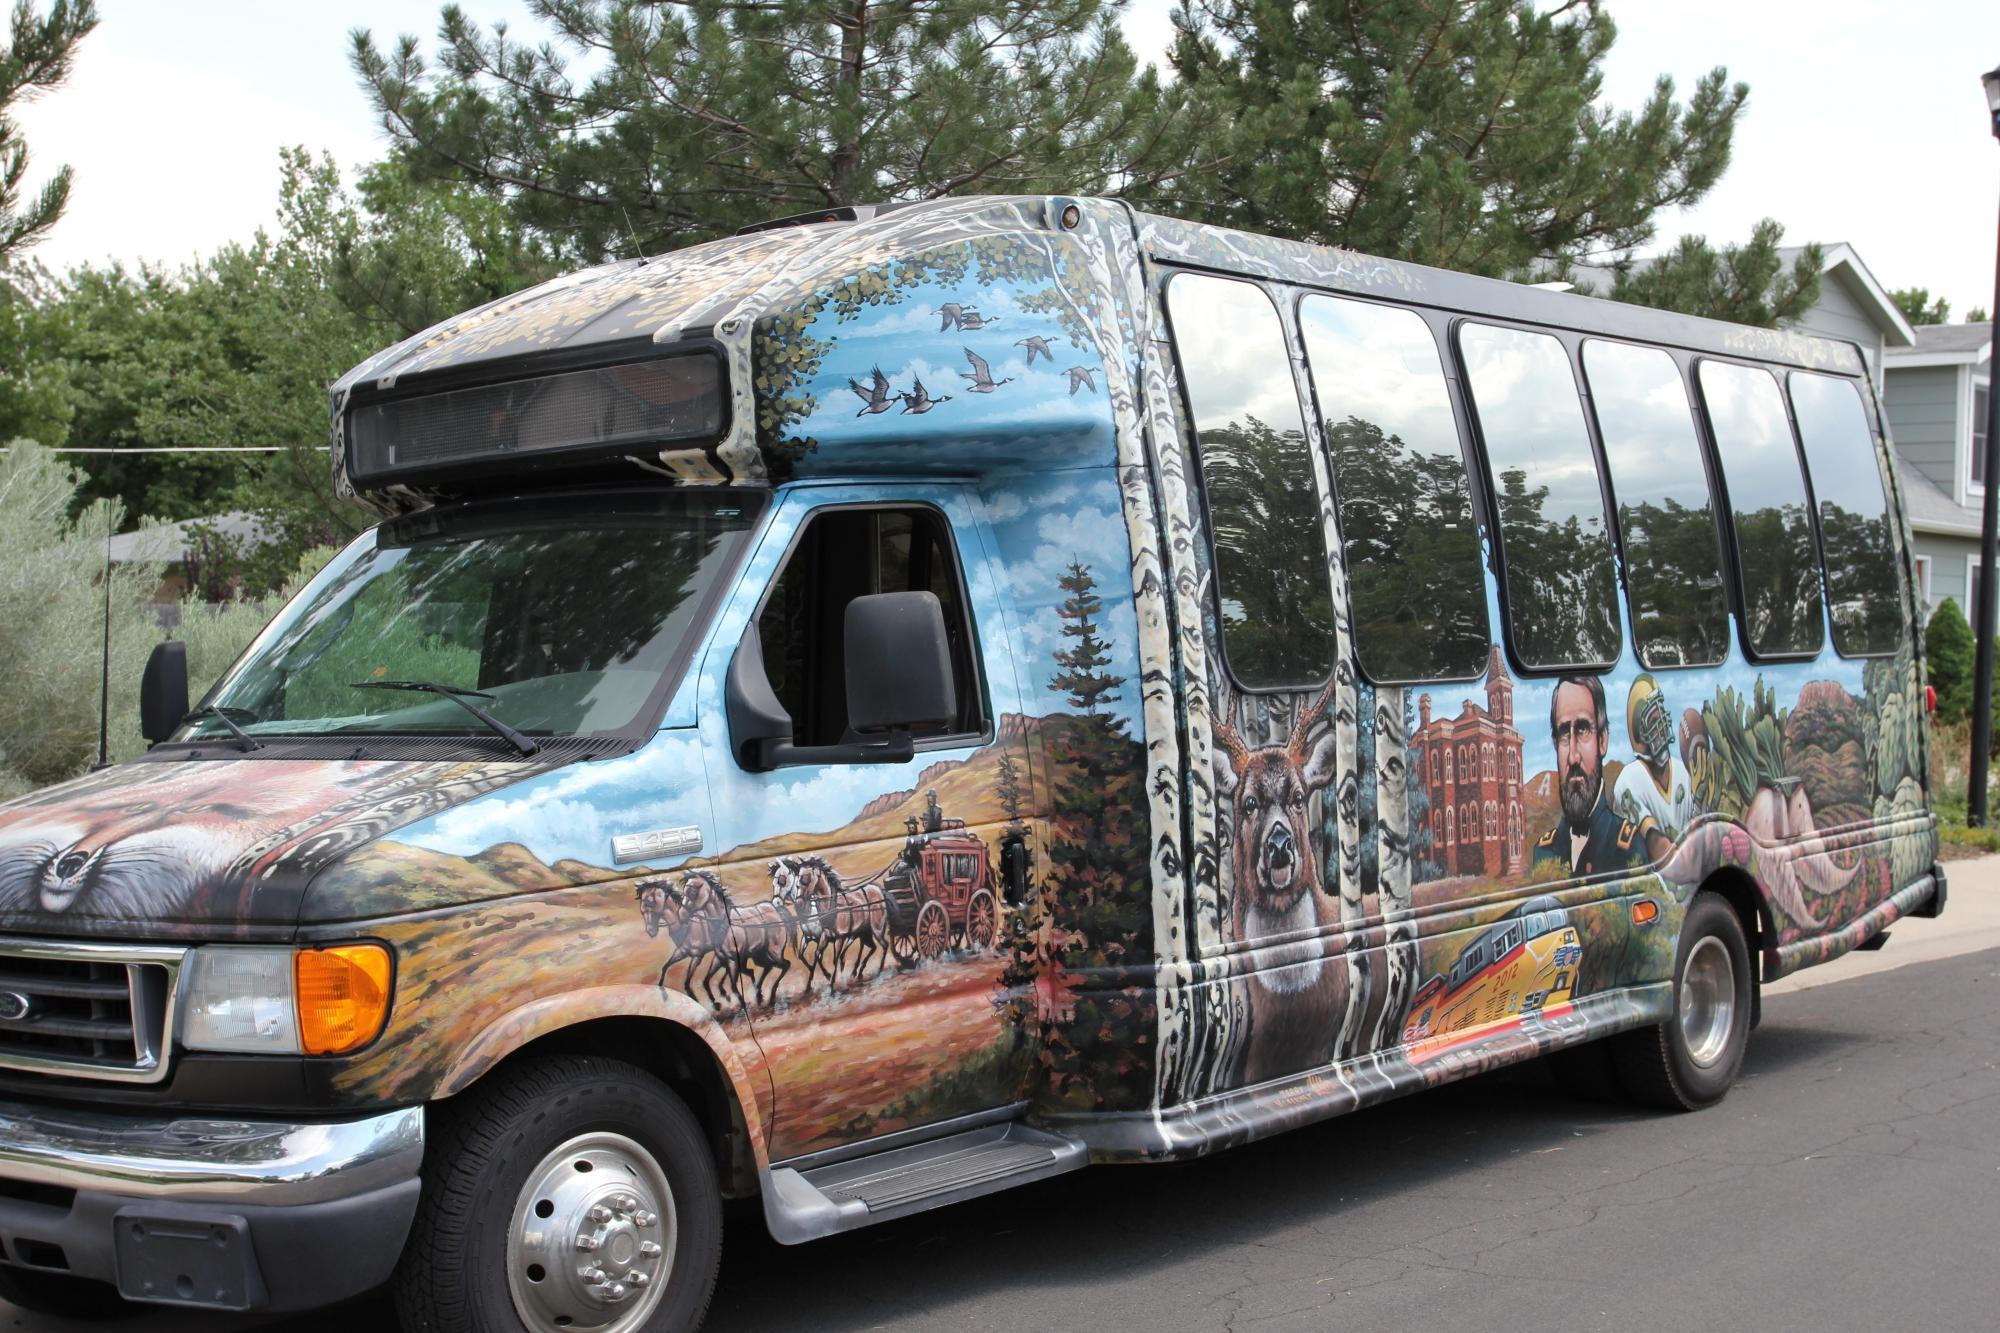 Learn all about Magic Bus Tours in Fort Collins. Brewery tours, history tours, ghost tours, sightseeing tours, and more!